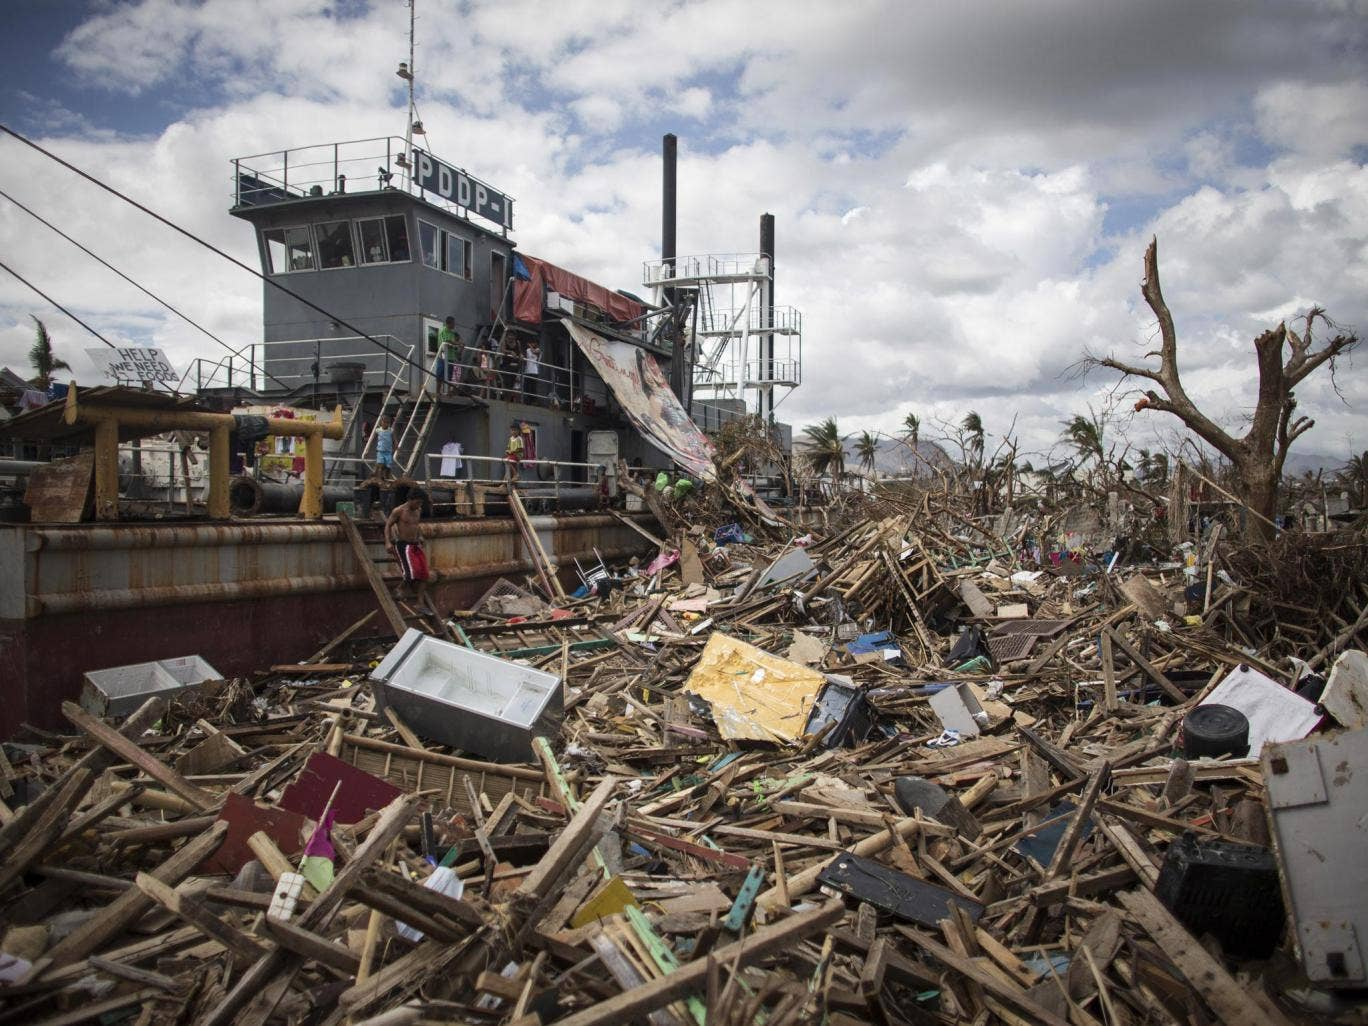 19 November 2013: A man walks down steps from a tanker that was washed ashore in a particularly badly damaged part of Tacloban during Typhoon Haiyan in Leyte, Philippines